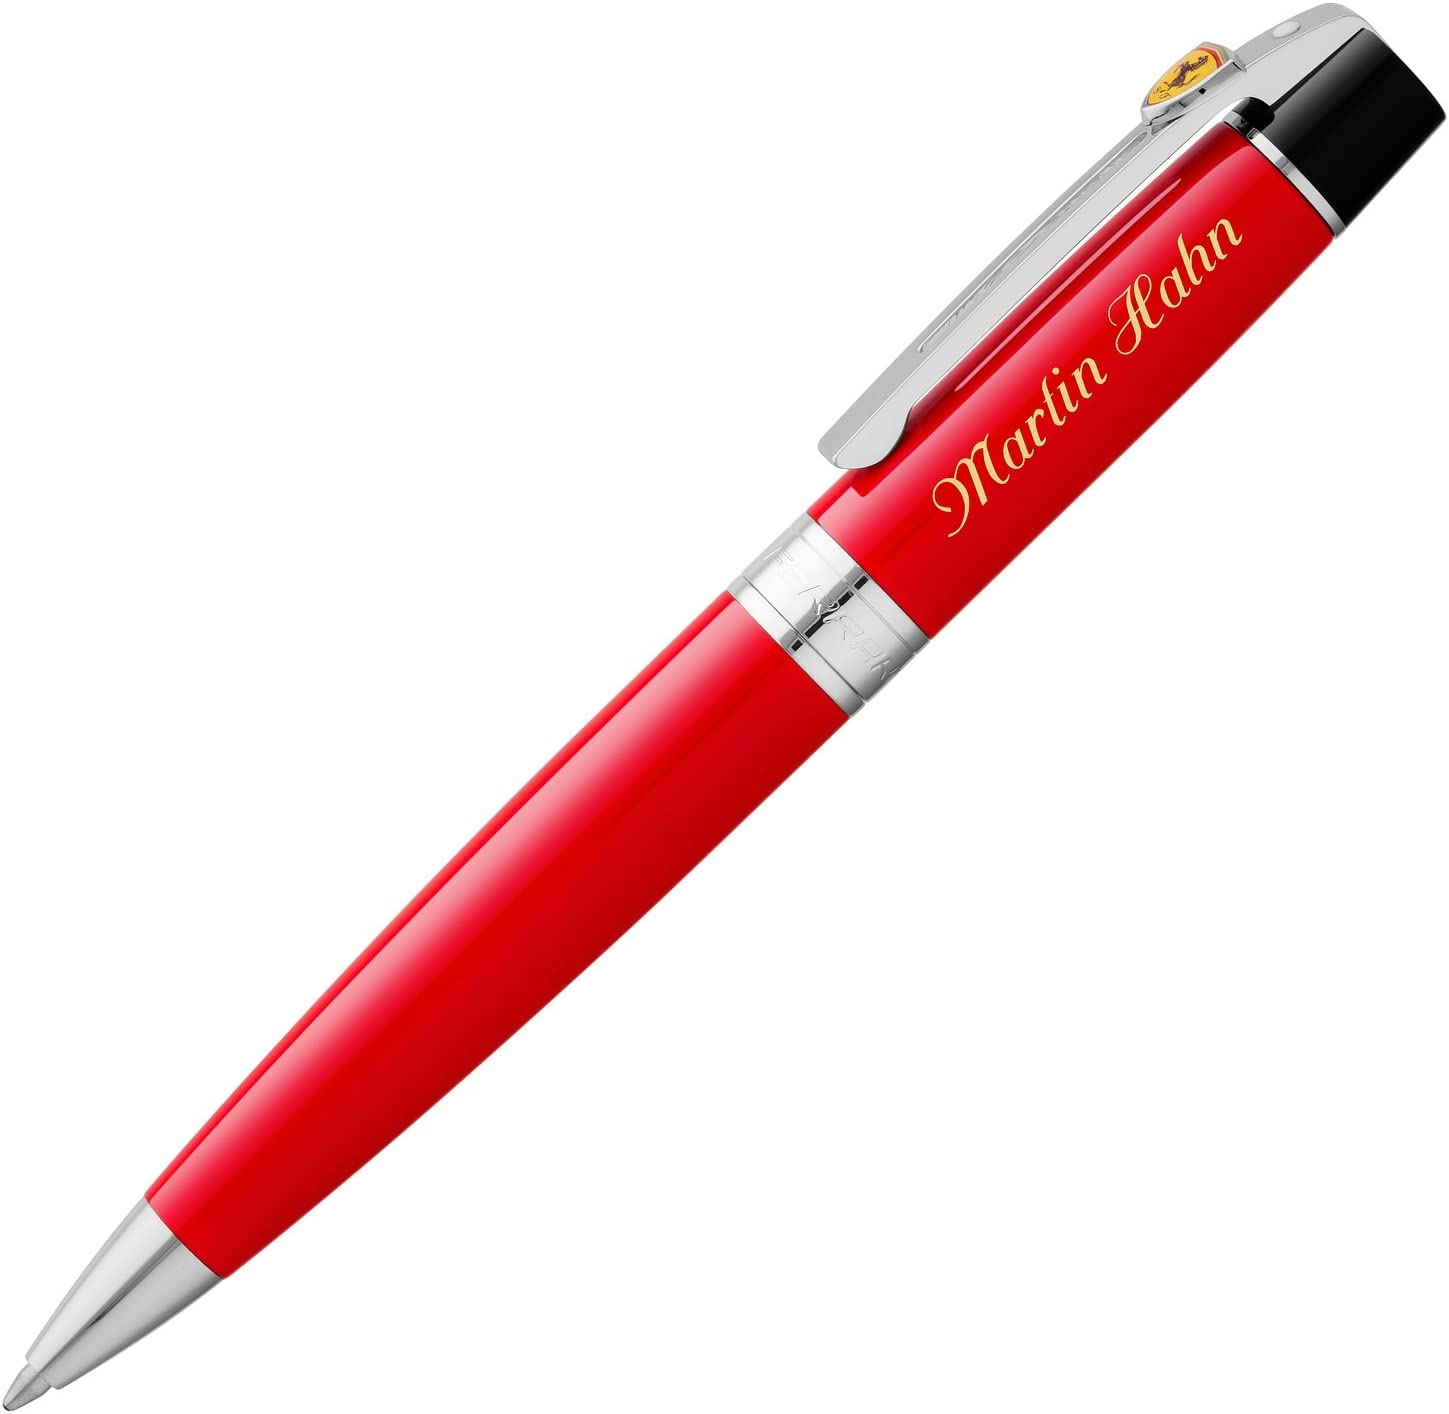 Sheaffer Ferrari 300 Ballpoint Pen With Personalised Laser Engraving Available Amazon De Bürobedarf Schreibwaren